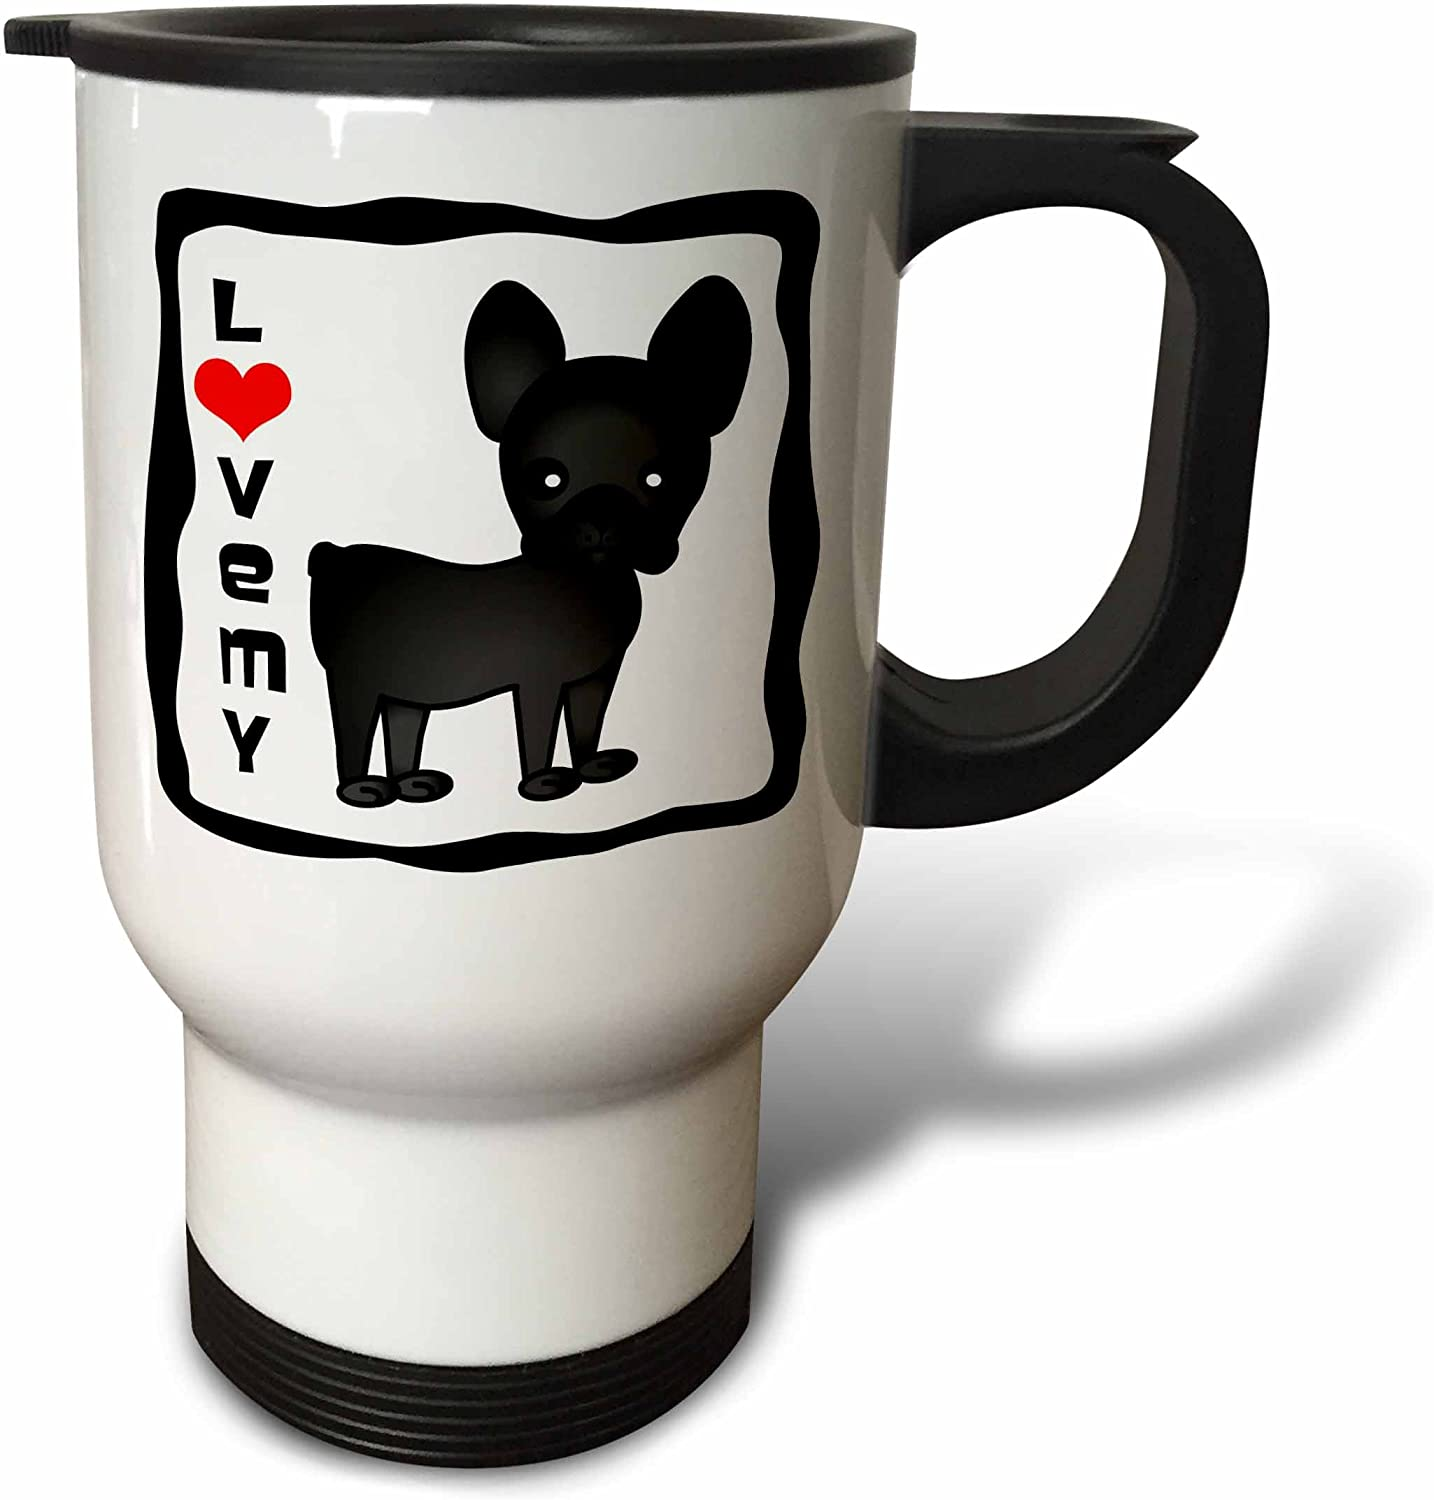 3drose I Love My French Bulldog Black Brindle Stainless Steel Travel Mug 14 Ounce Kitchen Dining